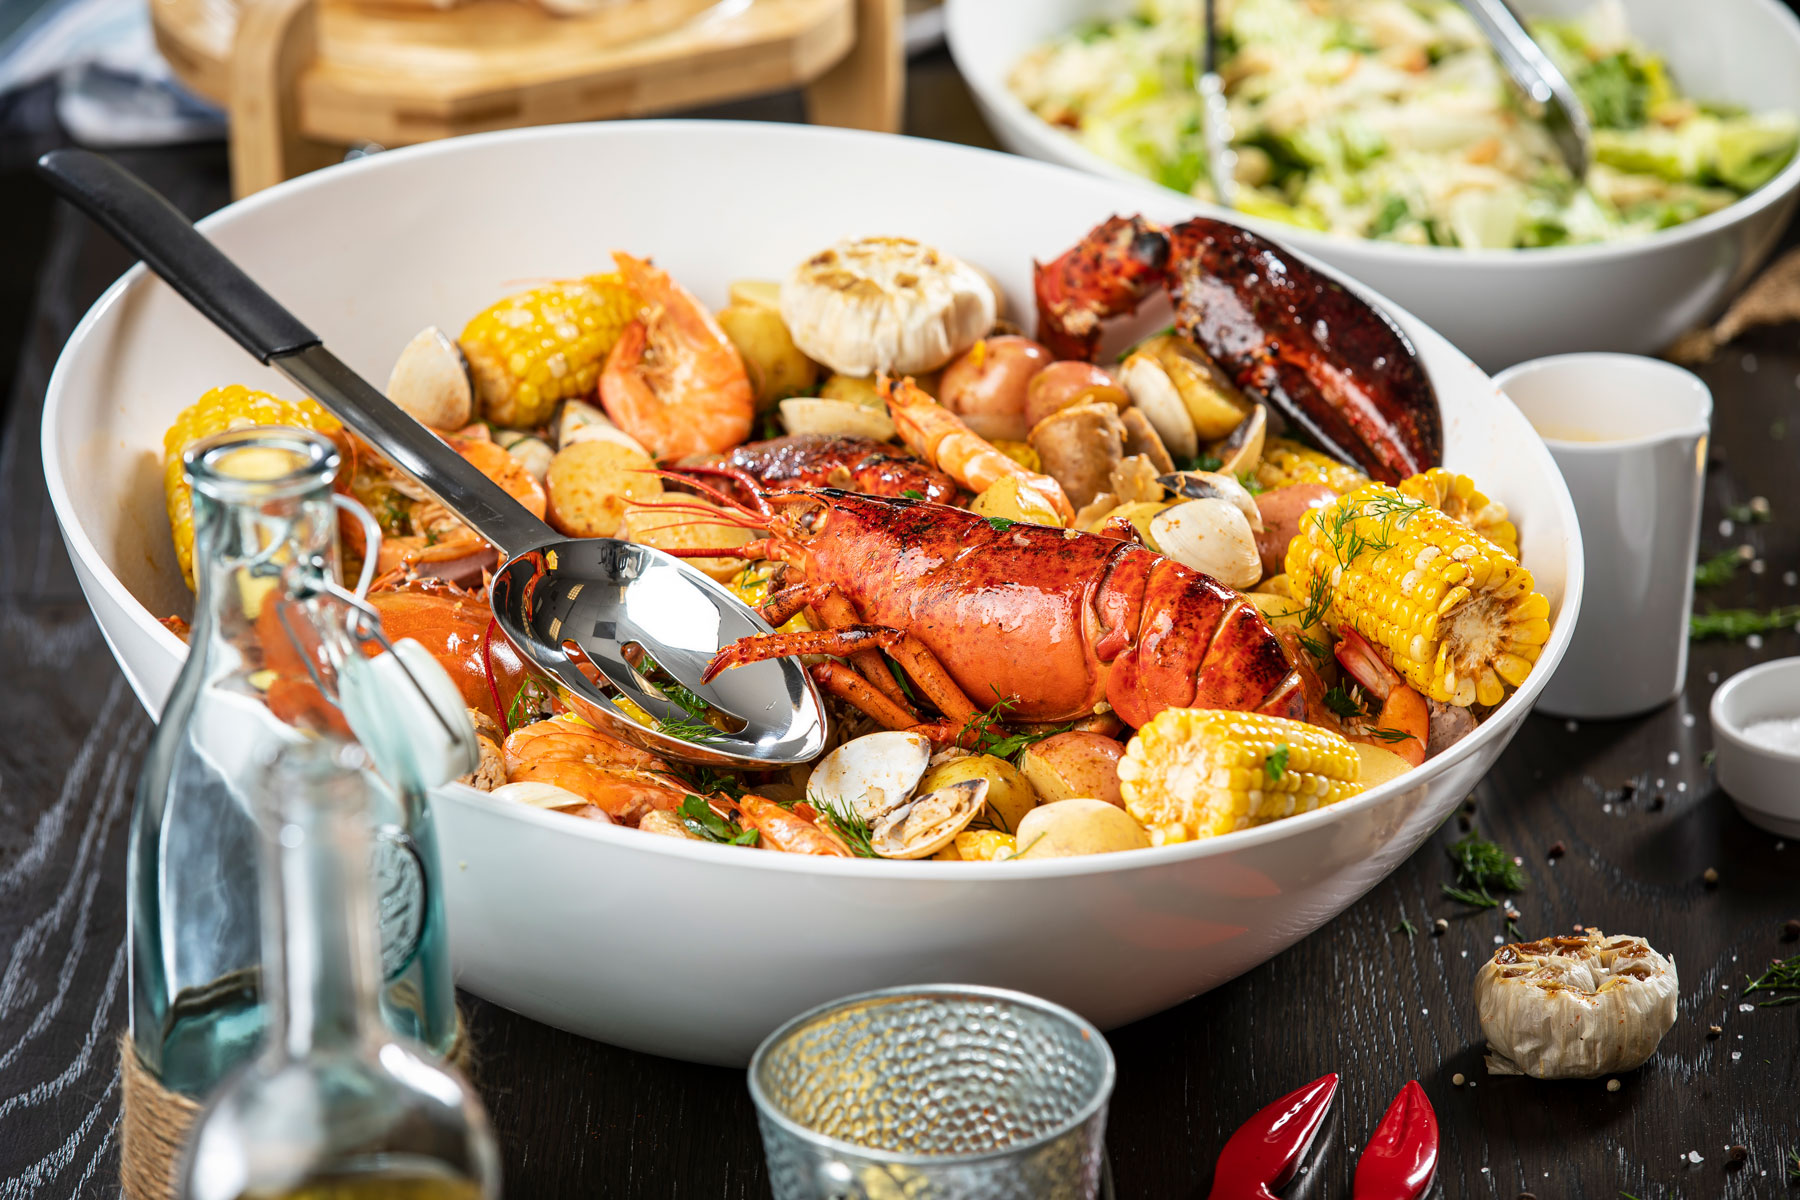 Bowl of Lobster with TableCraft Grande Bowls